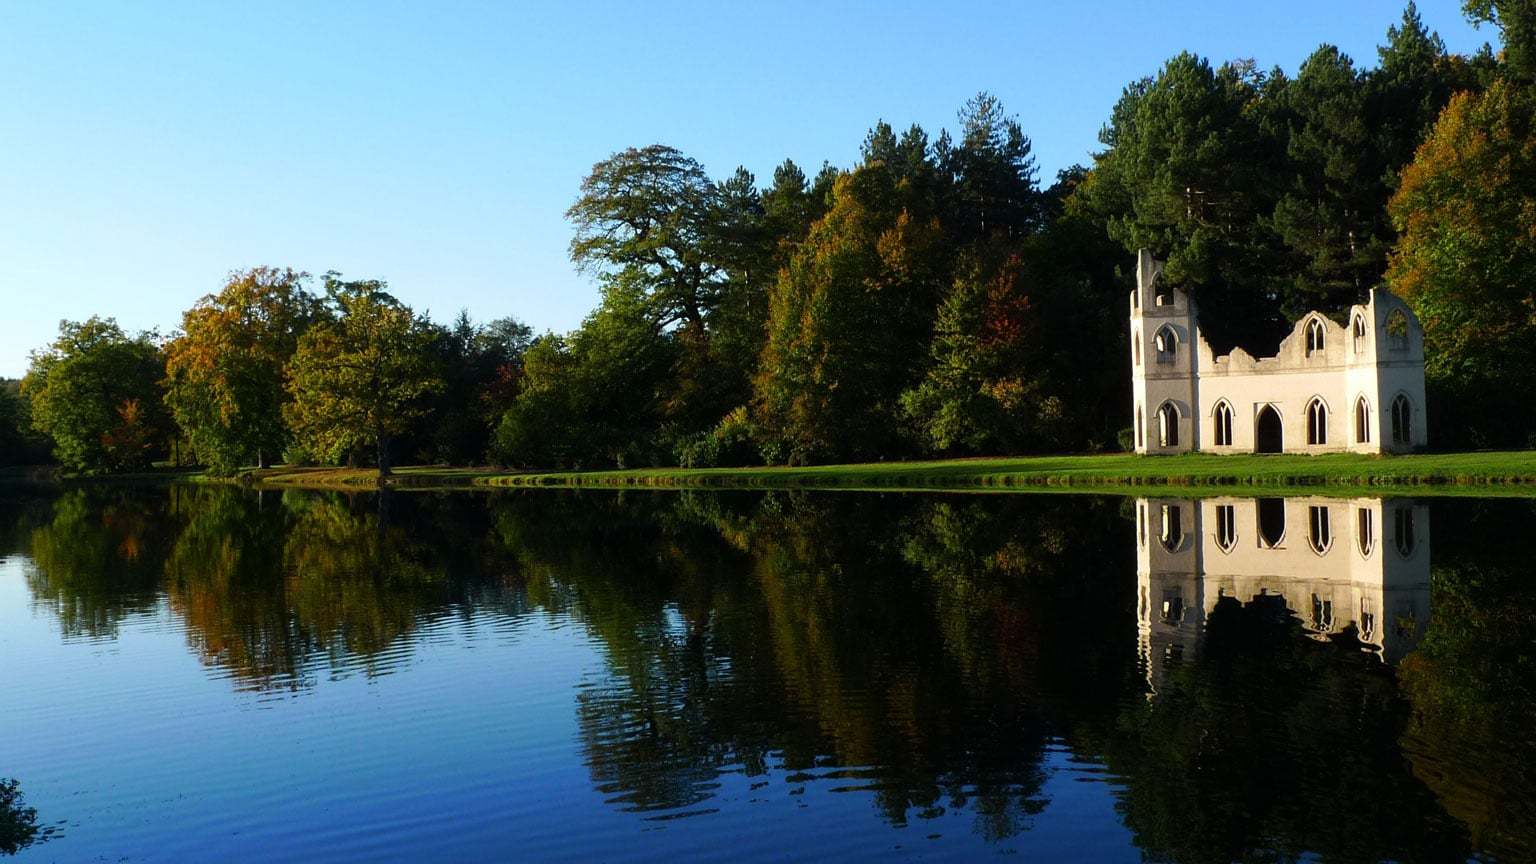 3. Painshill Park, Surrey, Reduced price with National Art Pass - Courtesy of Fred Holmes (Painshill)